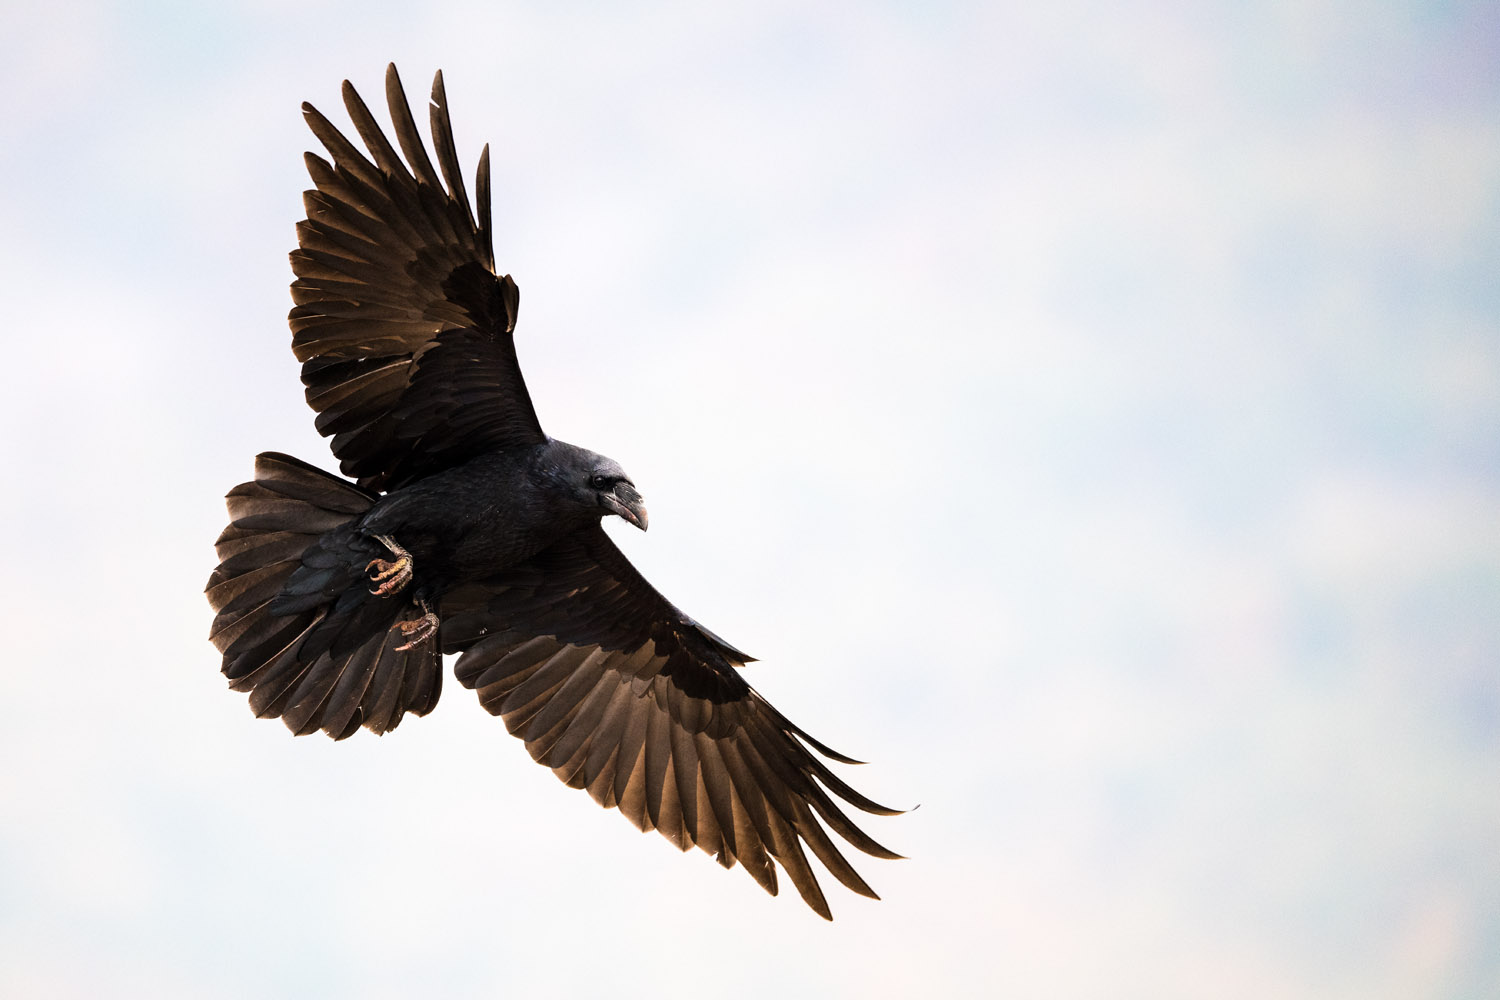 Common raven in flight, Eastern Rhodope Mountains, Bulgaria